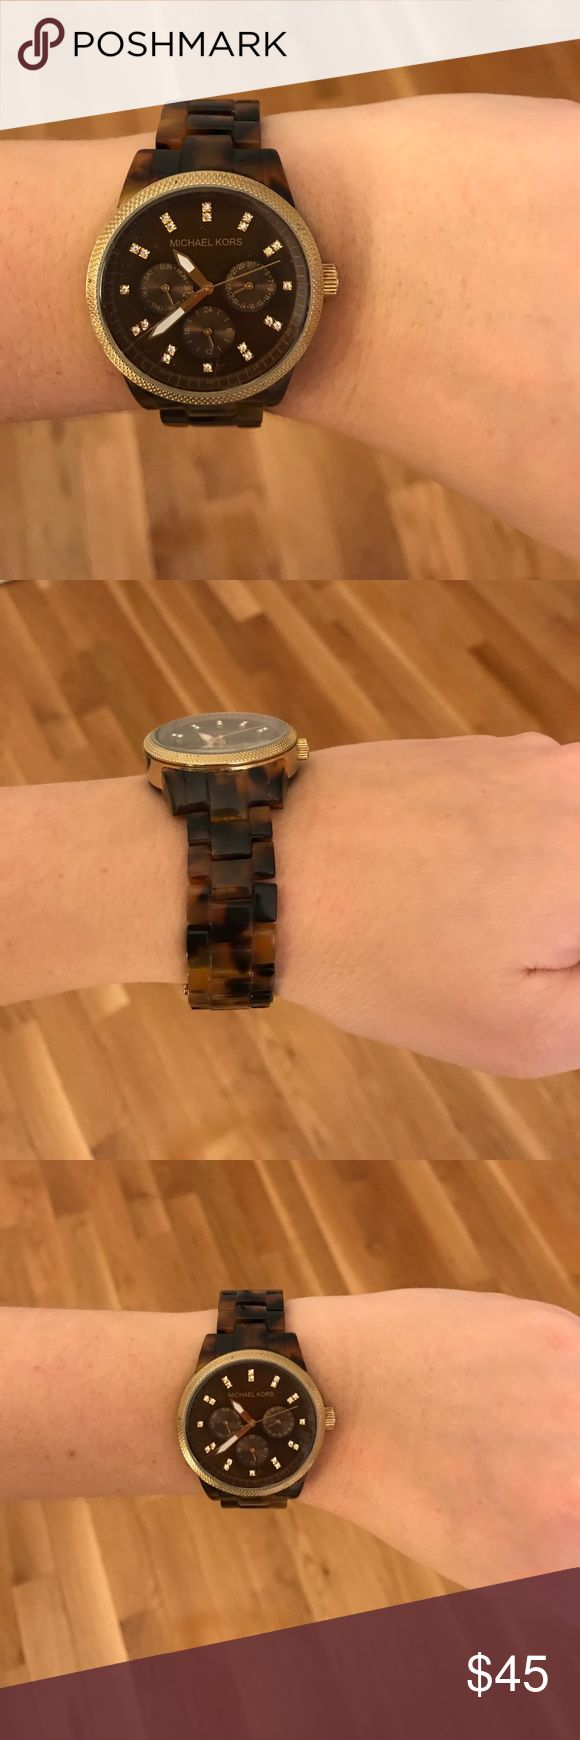 Michael Kors Tortoise Shell watch Super cute Michael Kors Tortoise Shell watch! Lightly used - stainless steel. Brown tortoise shell band with gold hardware details. Battery is dead. Michael Kors Accessories Watches